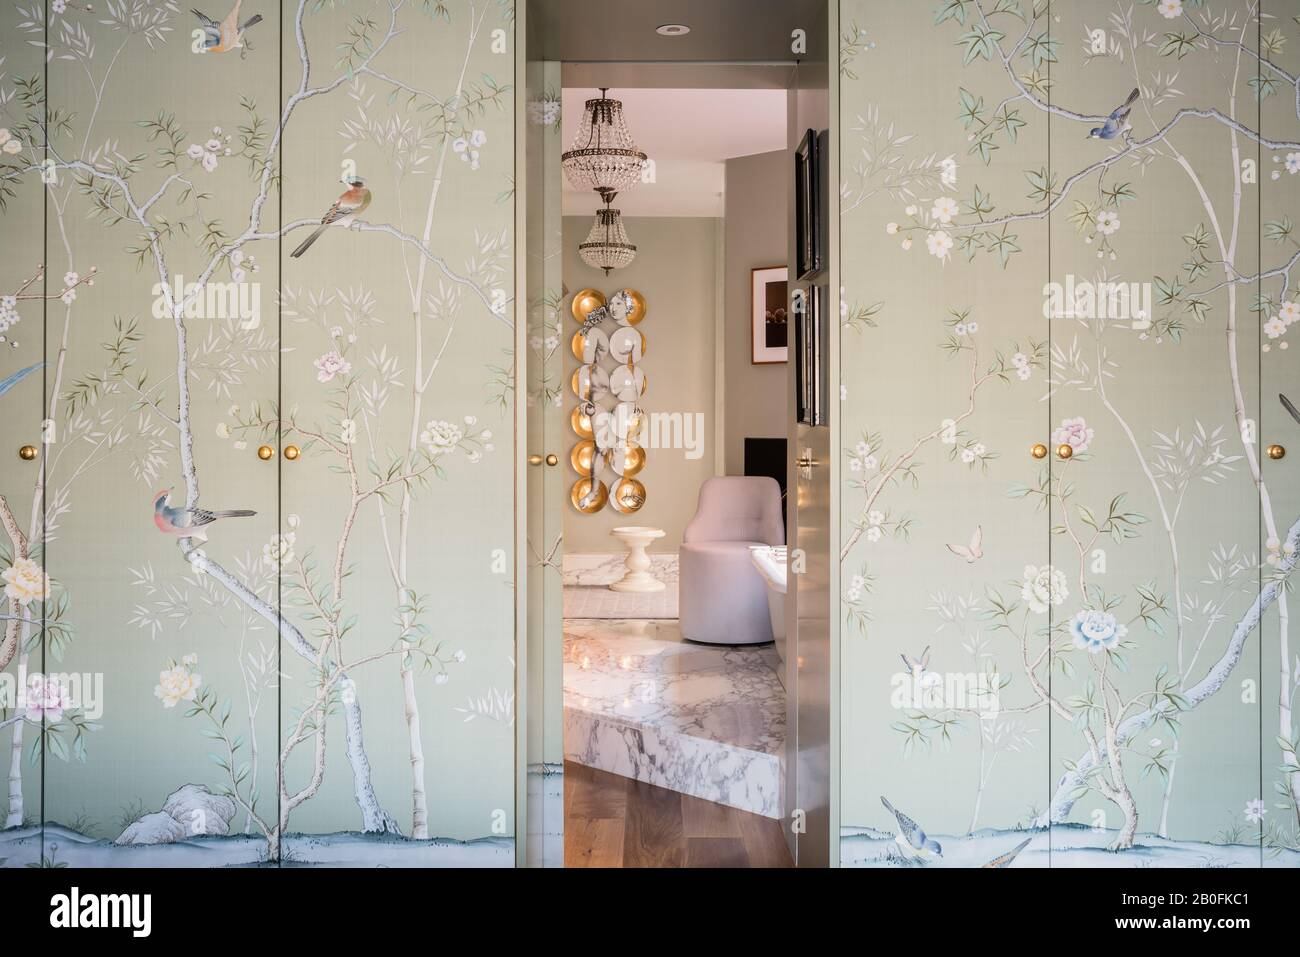 Chinoiserie wall paper covering wardrobe doors. Stock Photo